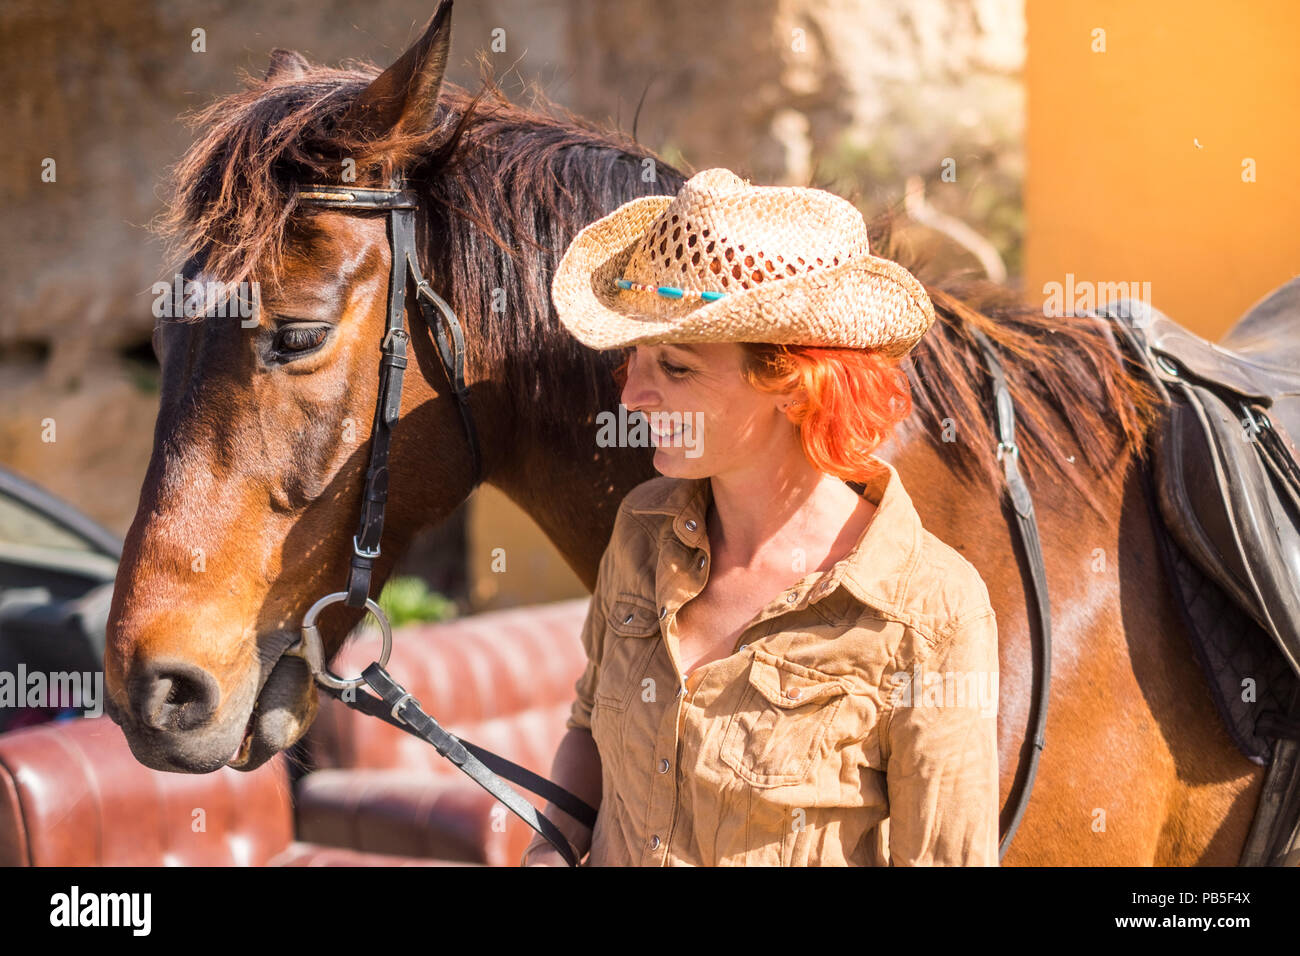 cheerful young lady in countryside prepare to ride her beautiful brown horse. white horse on the background. sunlight colors and outdoor lifestyle wit - Stock Image